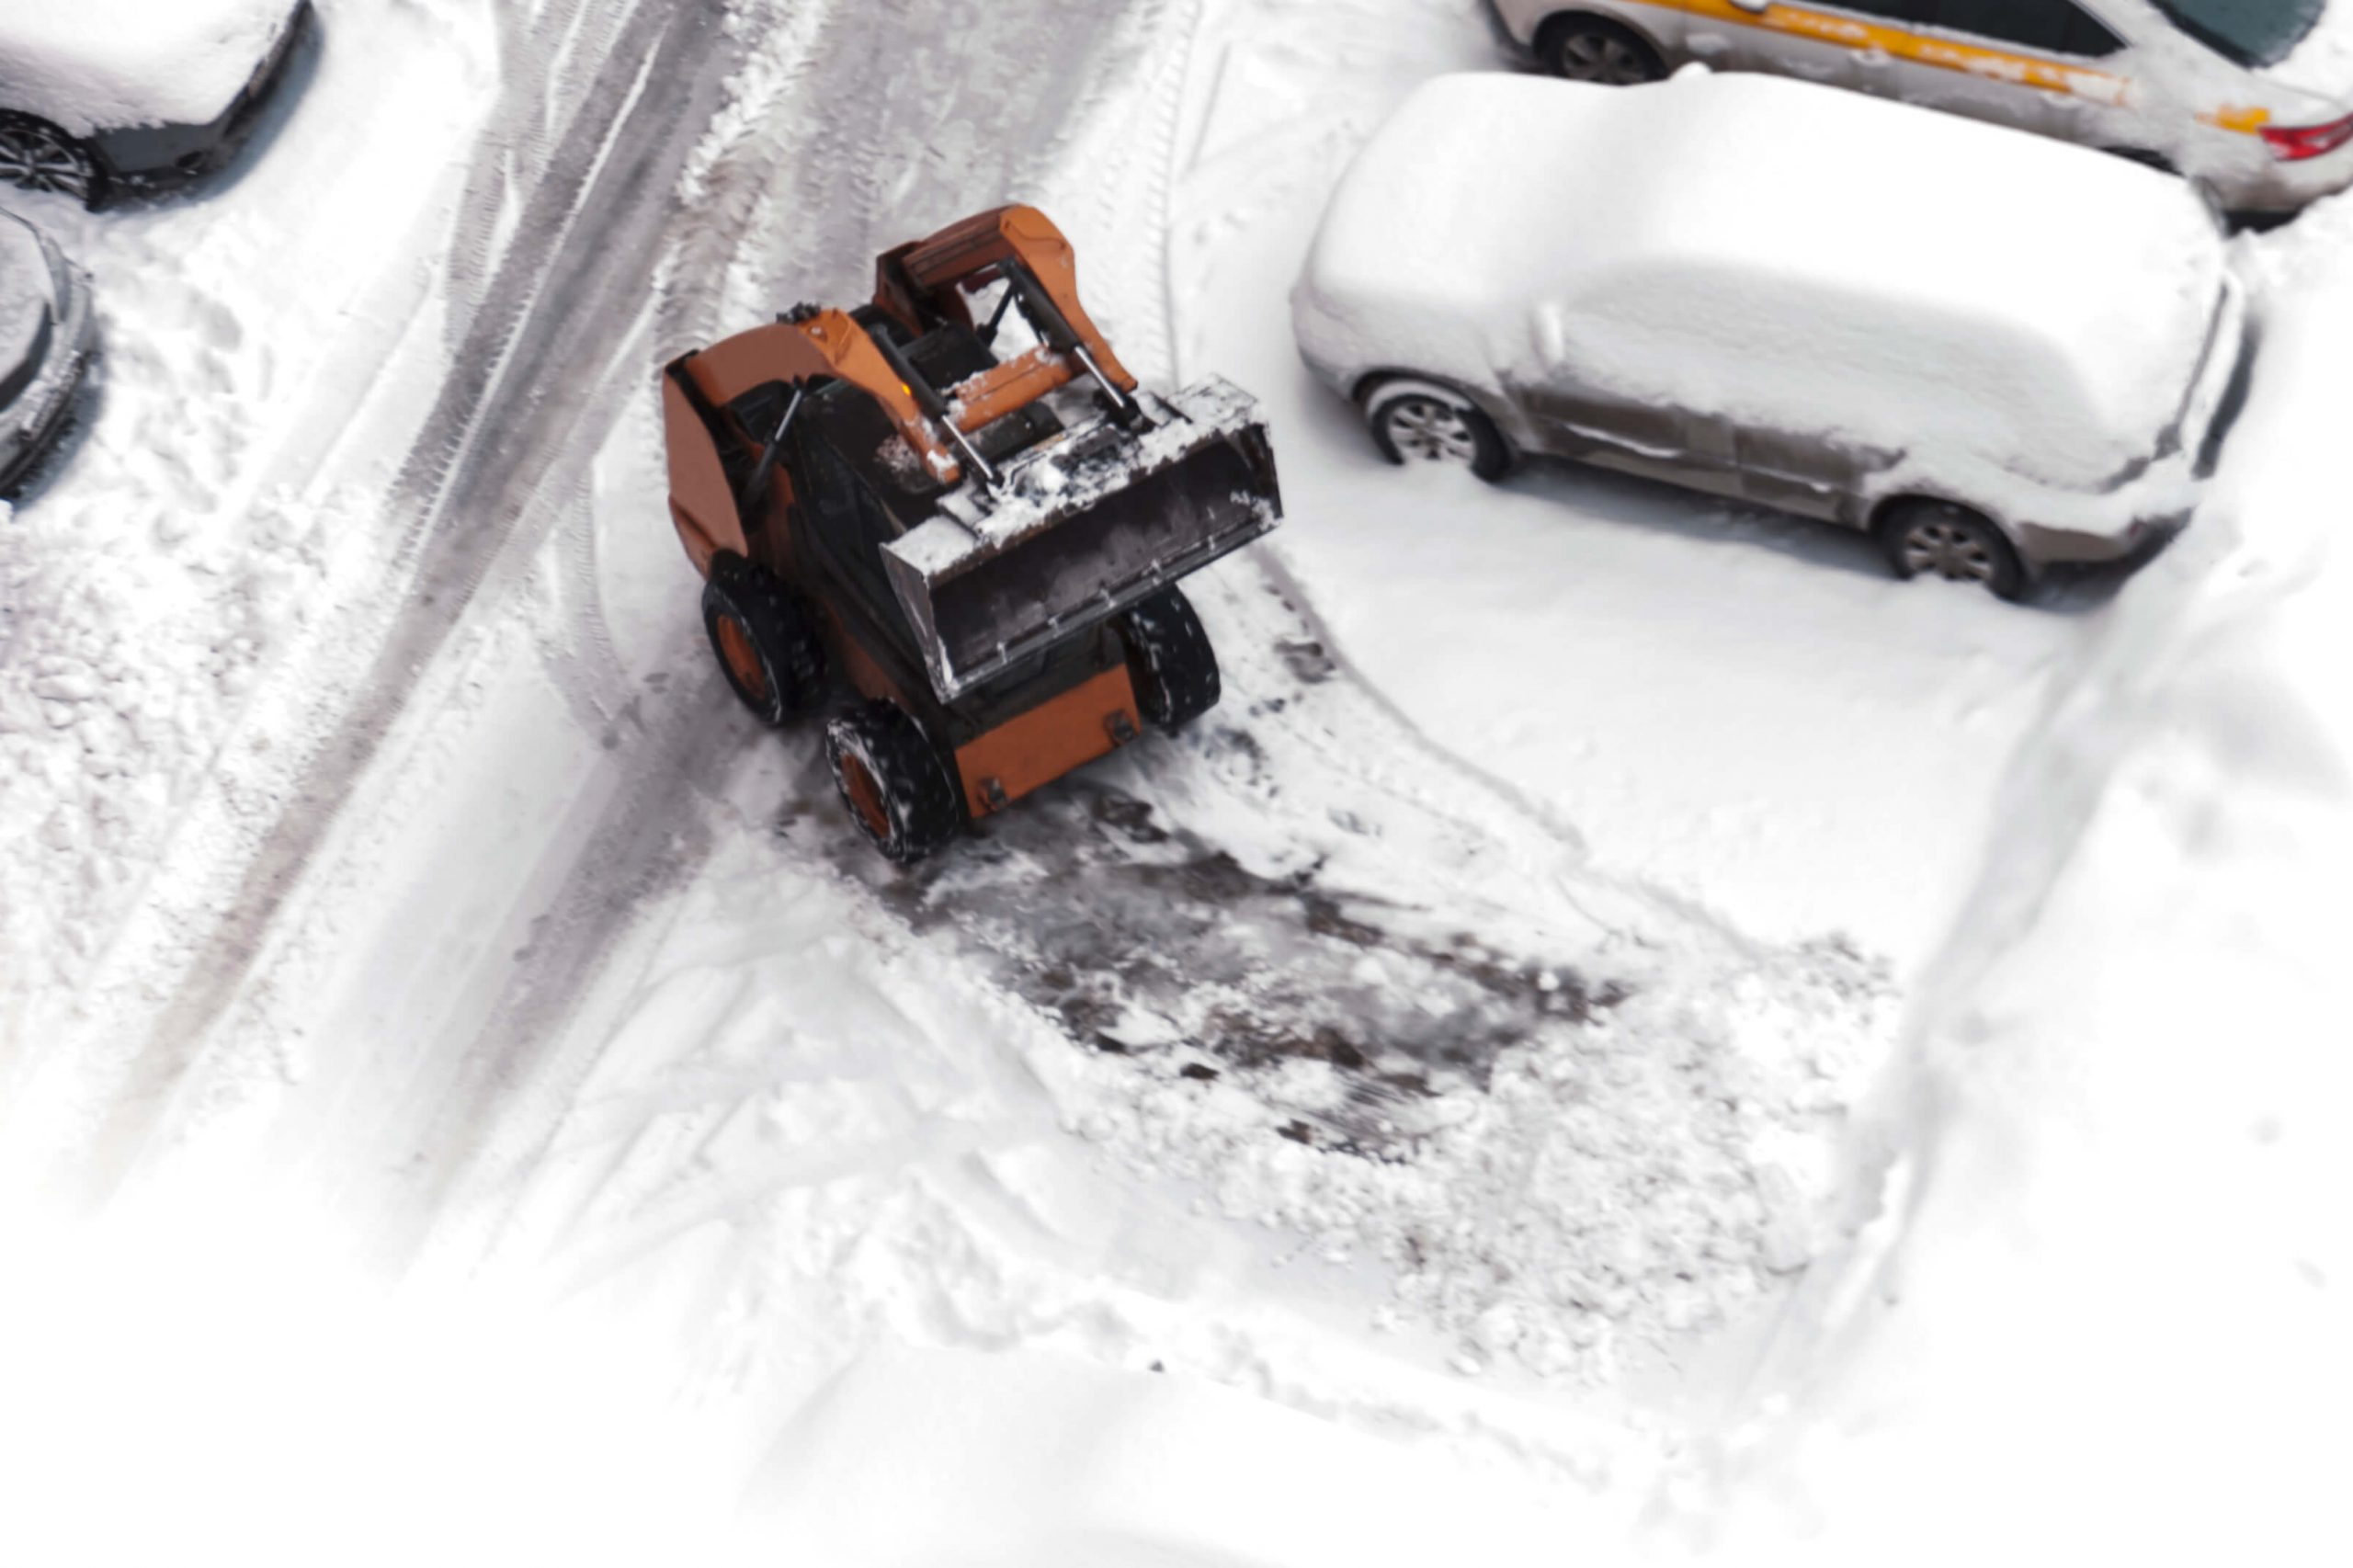 plowing snow covered parking lot